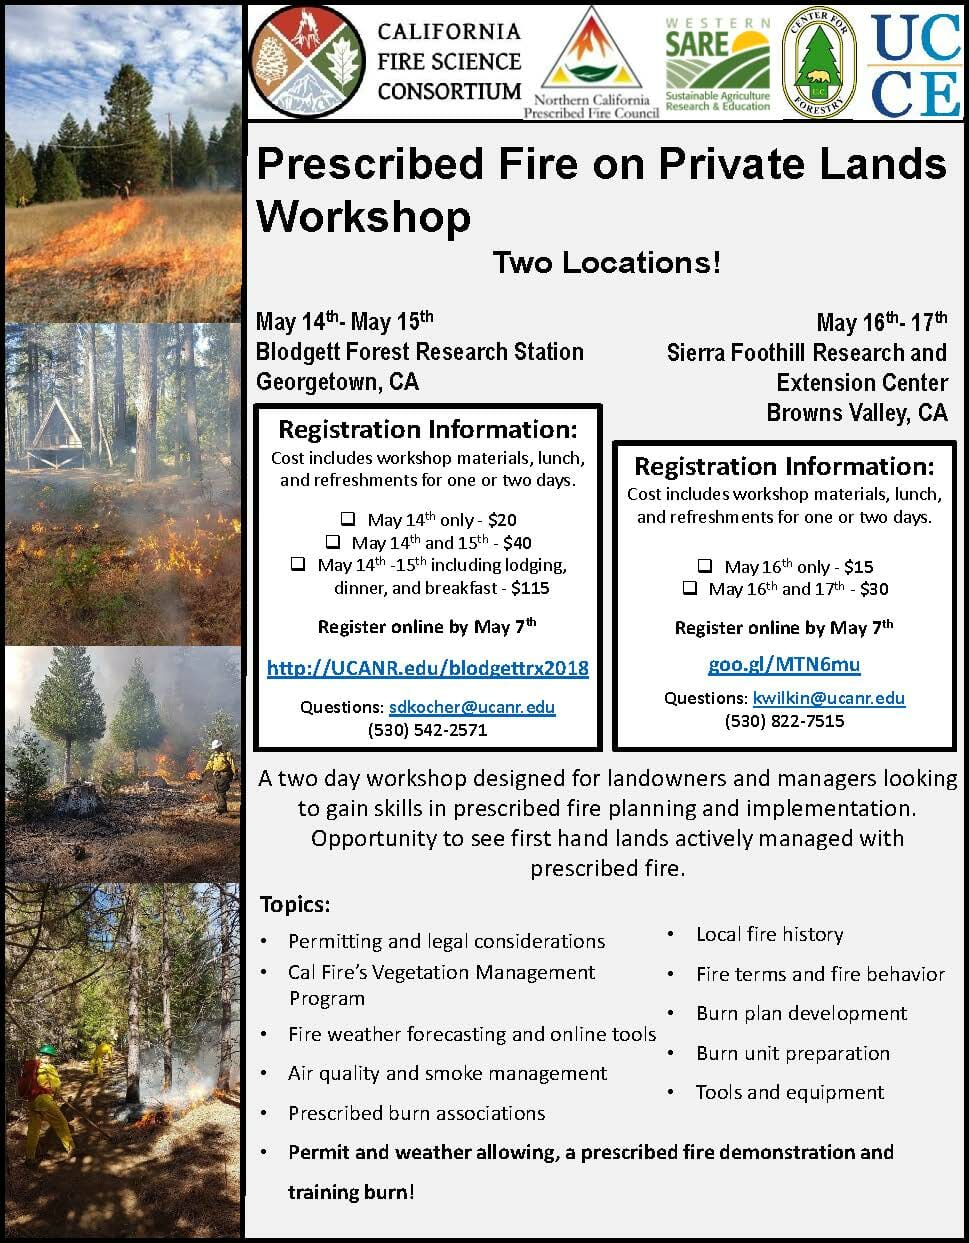 Prescribed Fire on Private Lands: Workshops in Georgetown and Browns